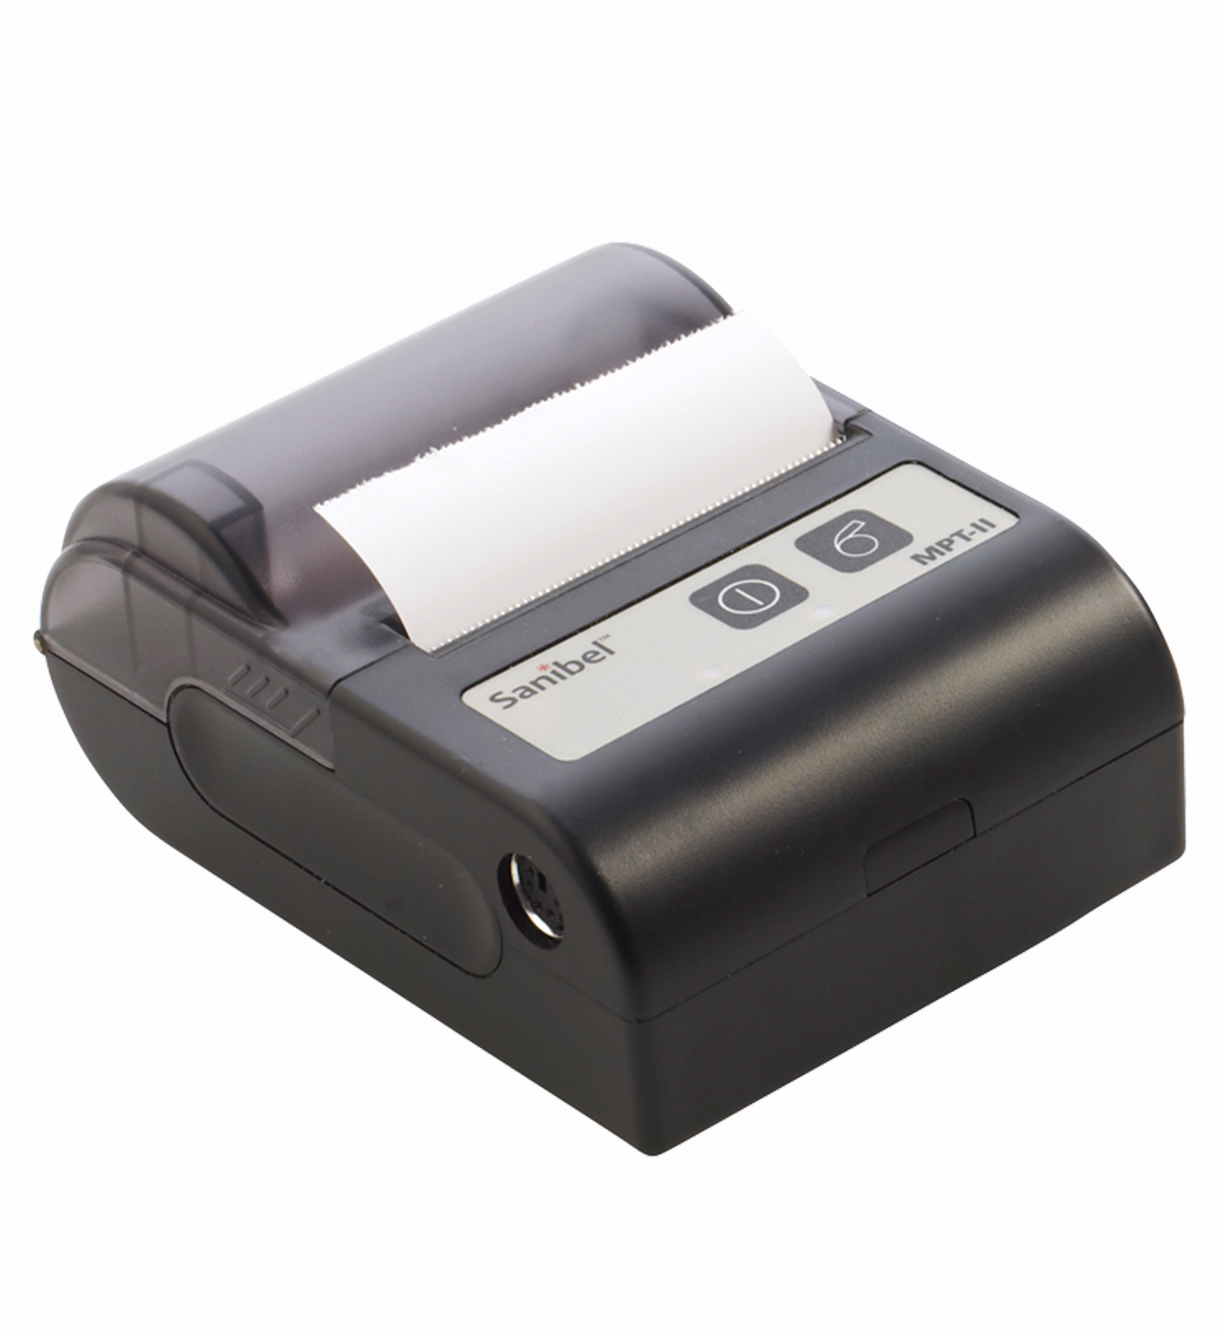 Sanibel MPT-2 Thermal Printer